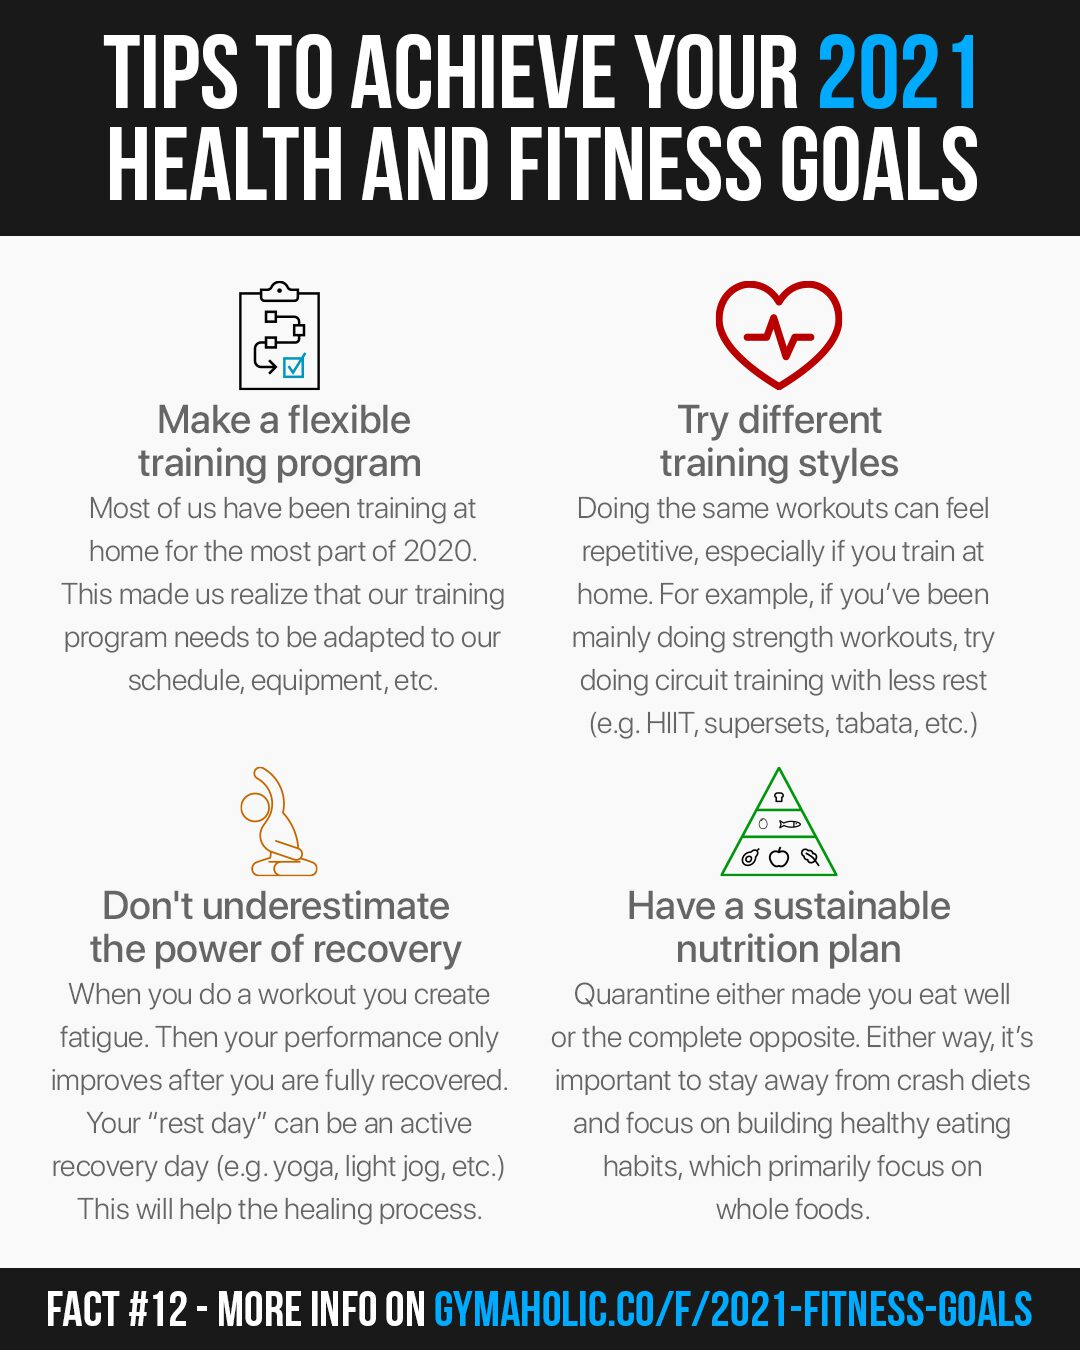 How to achieve your 2021 health and fitness goals